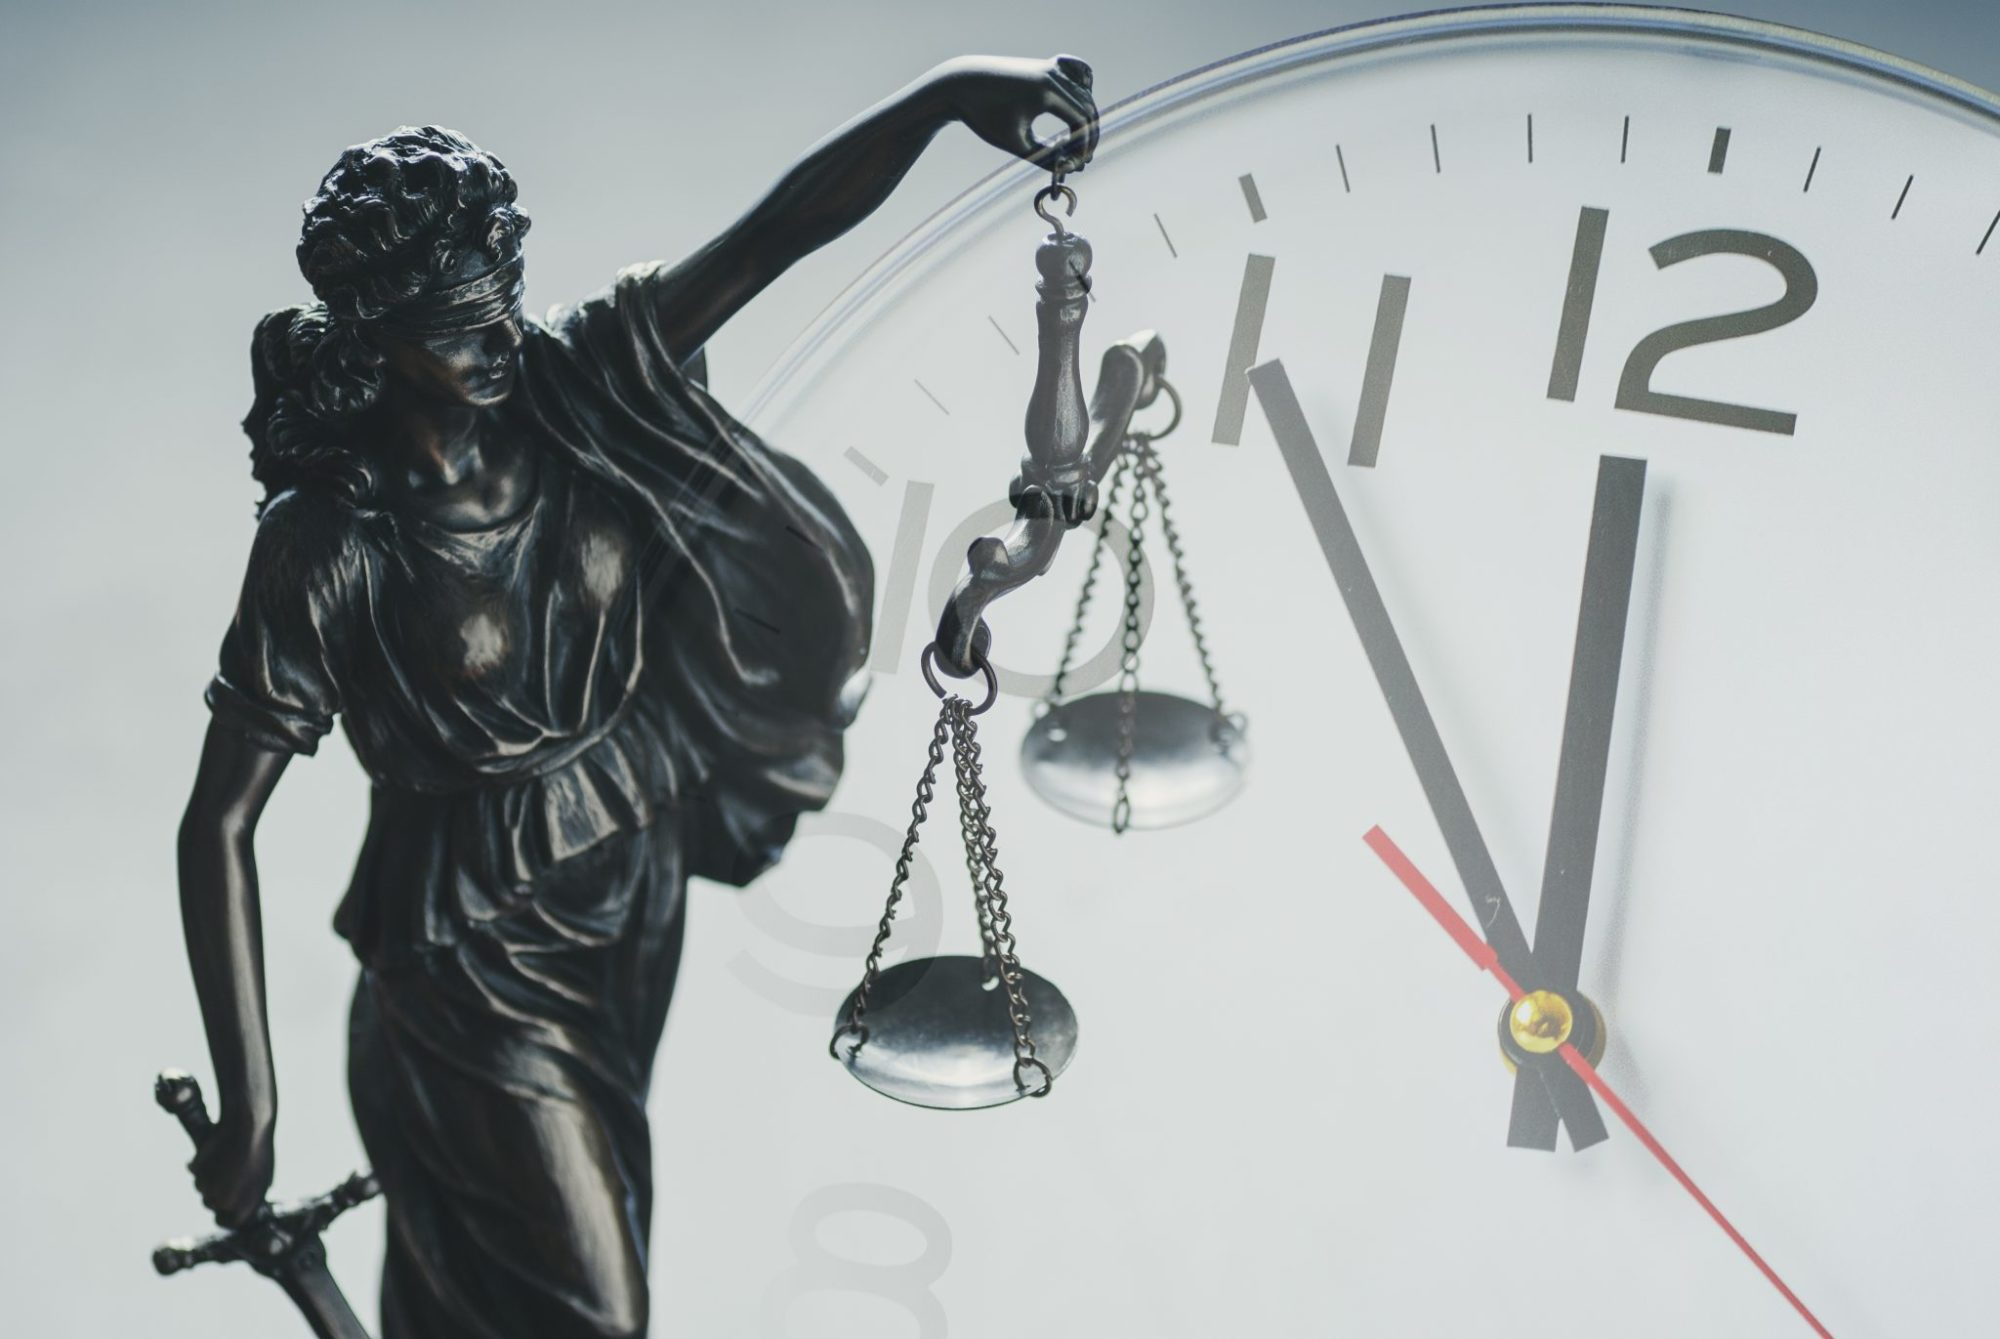 Justice holding the scales of justice and law